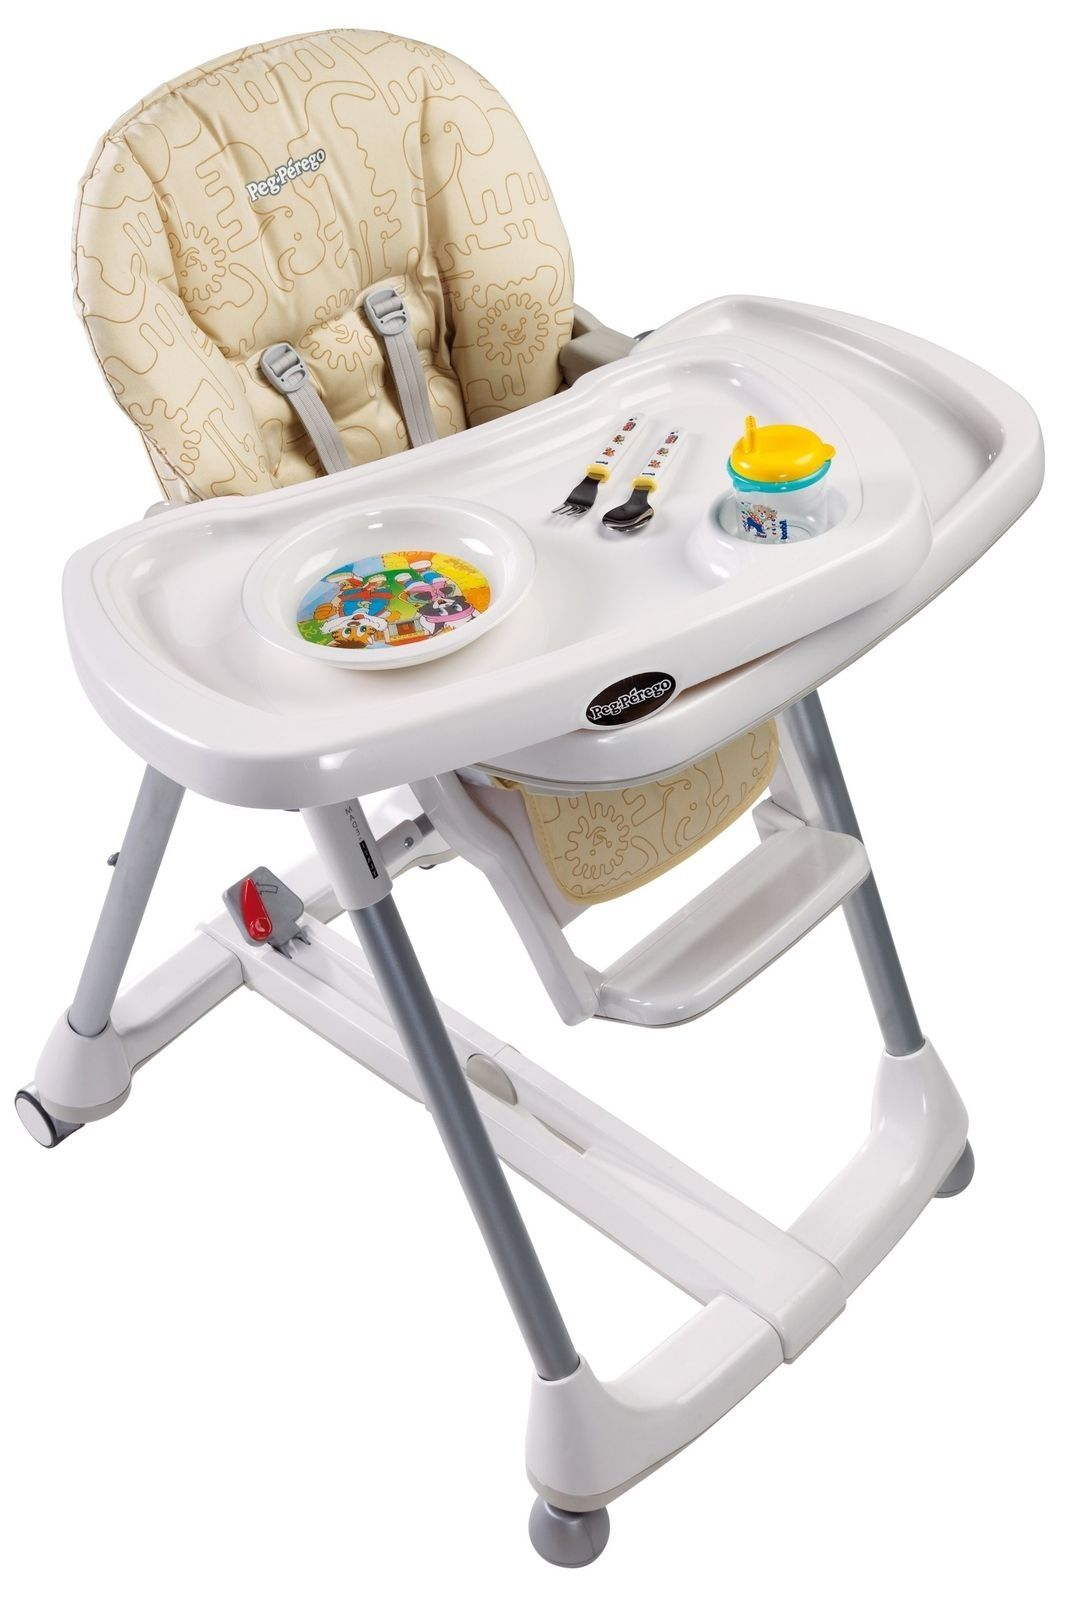 Peg Perego Prima Pappa Diner High Chair Seat Cover